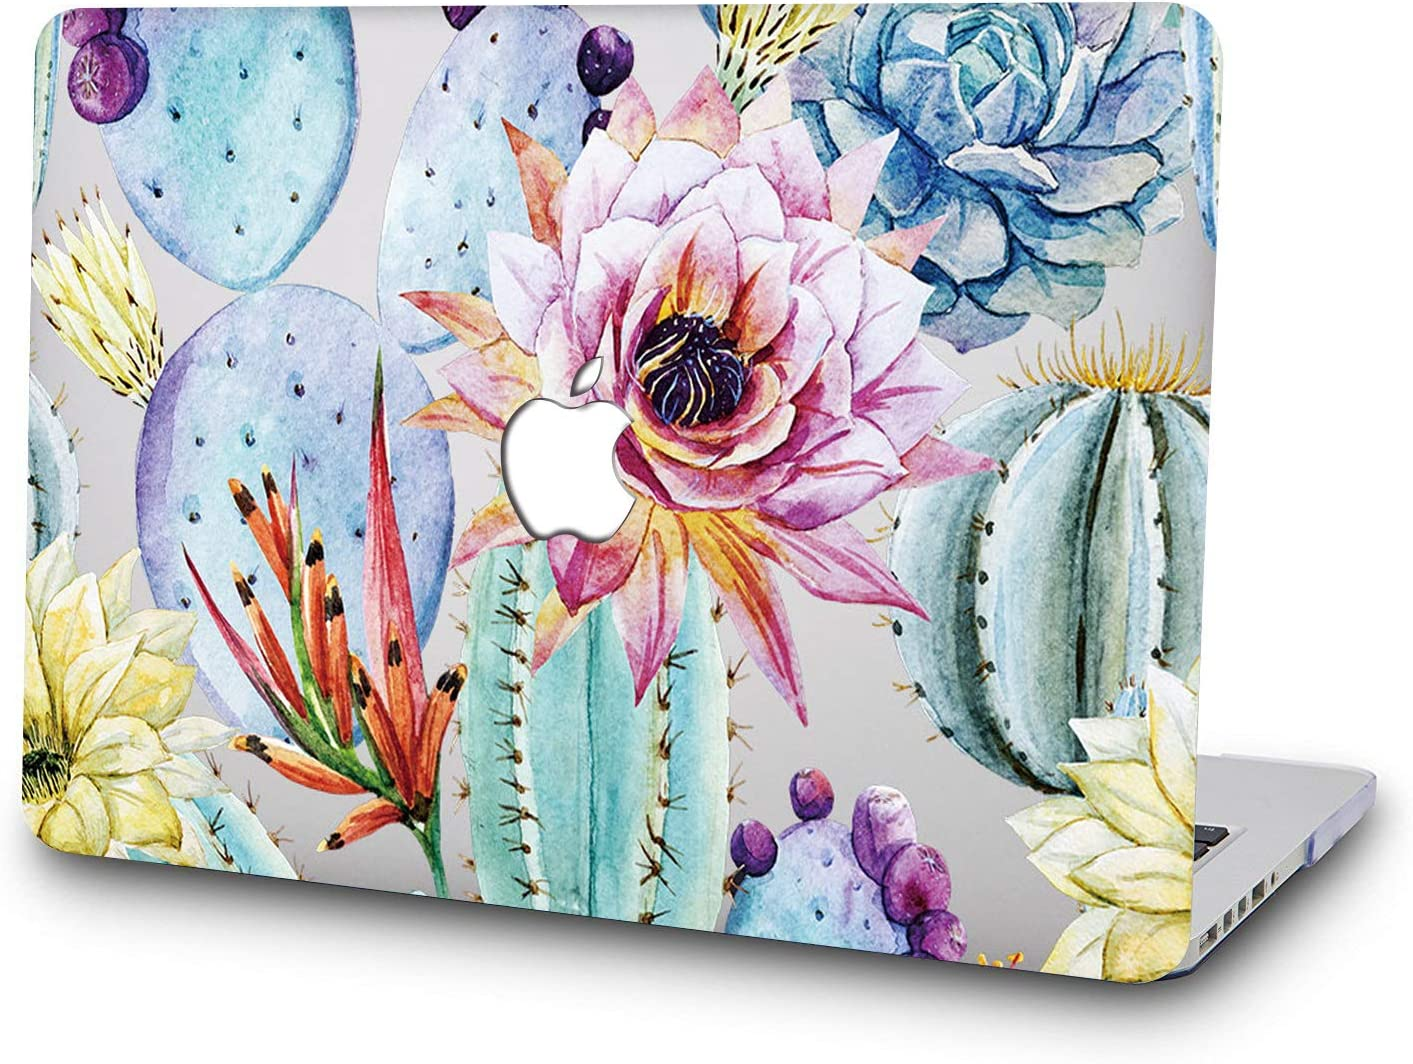 DTangLsm New MacBook Air 13 Inch Case Cover Shell for Model A 1932 with Touch ID and Retina Display Beautiful Cactus